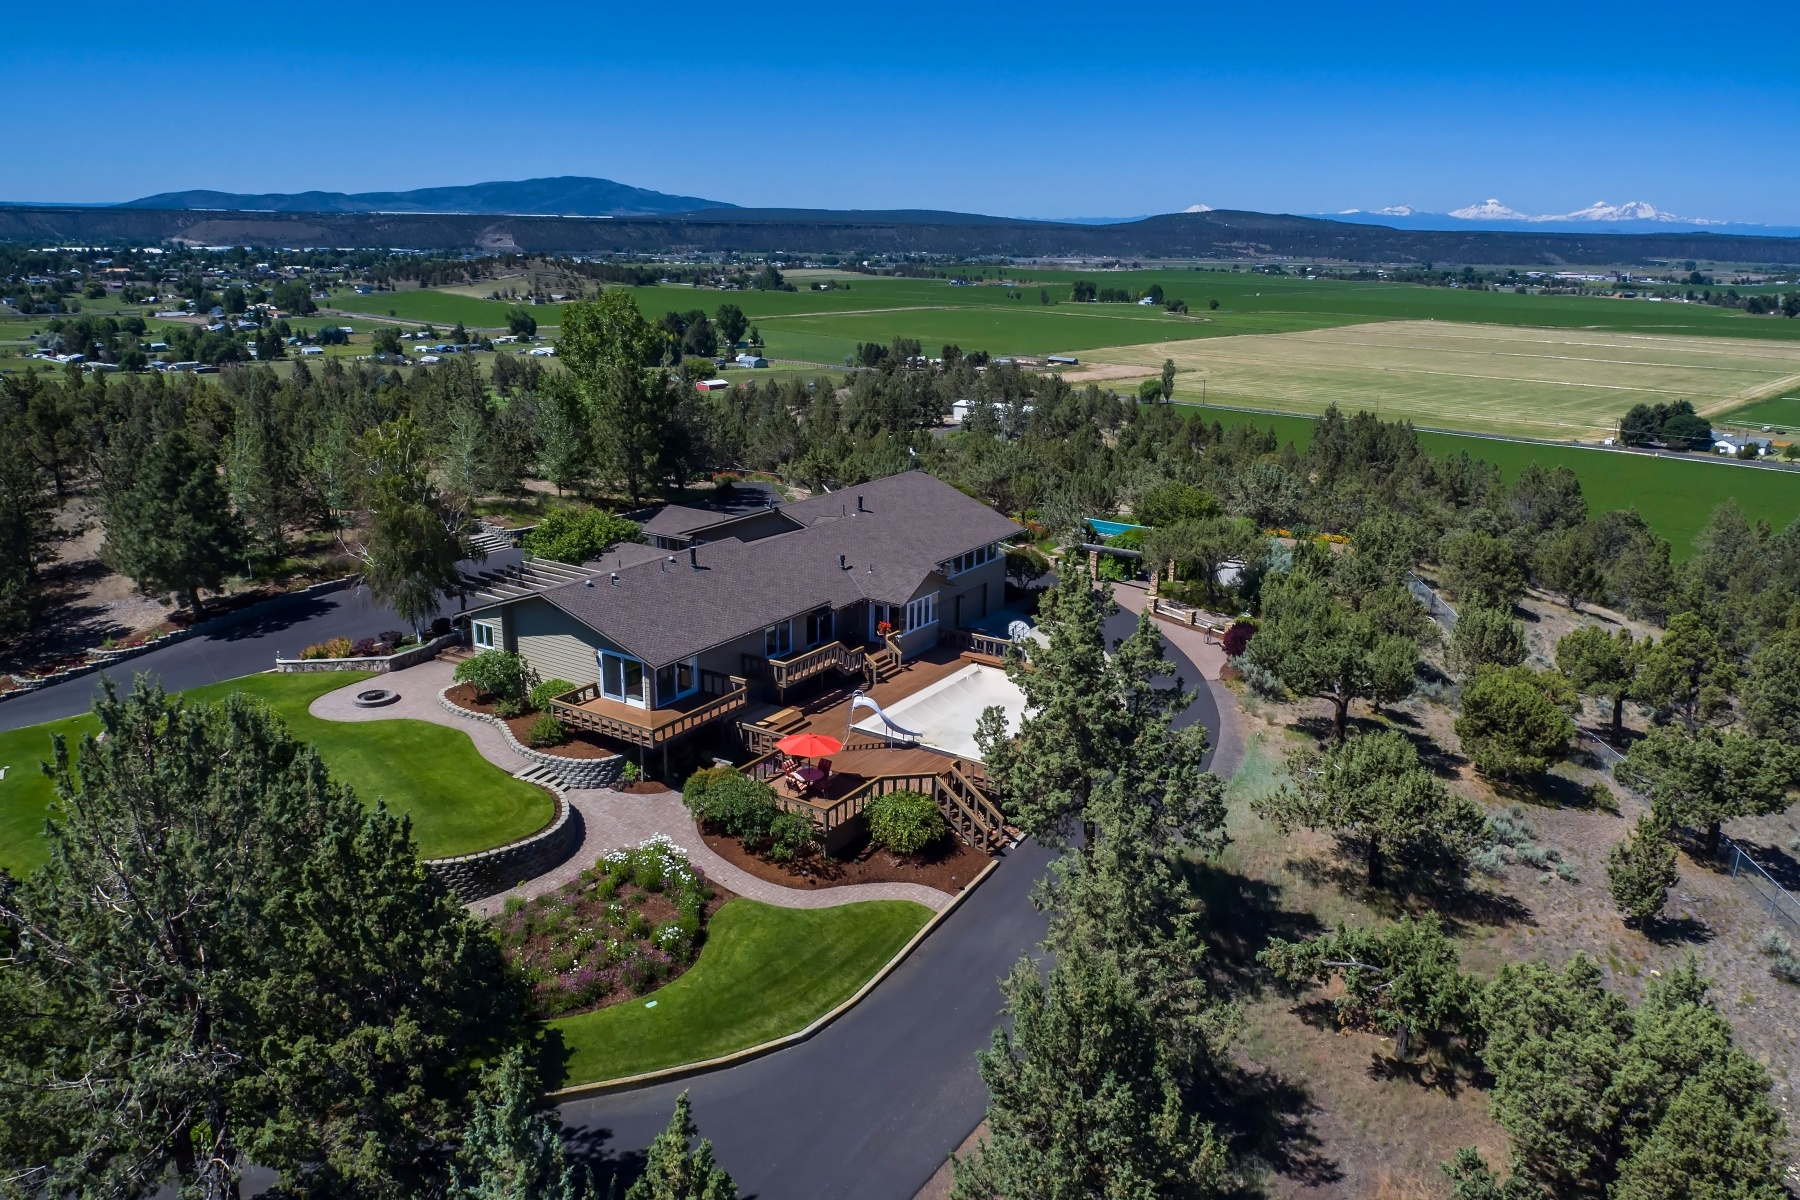 Single Family Home for Sale at Prineville Estate on Acreage 4720 N McKay Rd Prineville, Oregon, 97754 United States